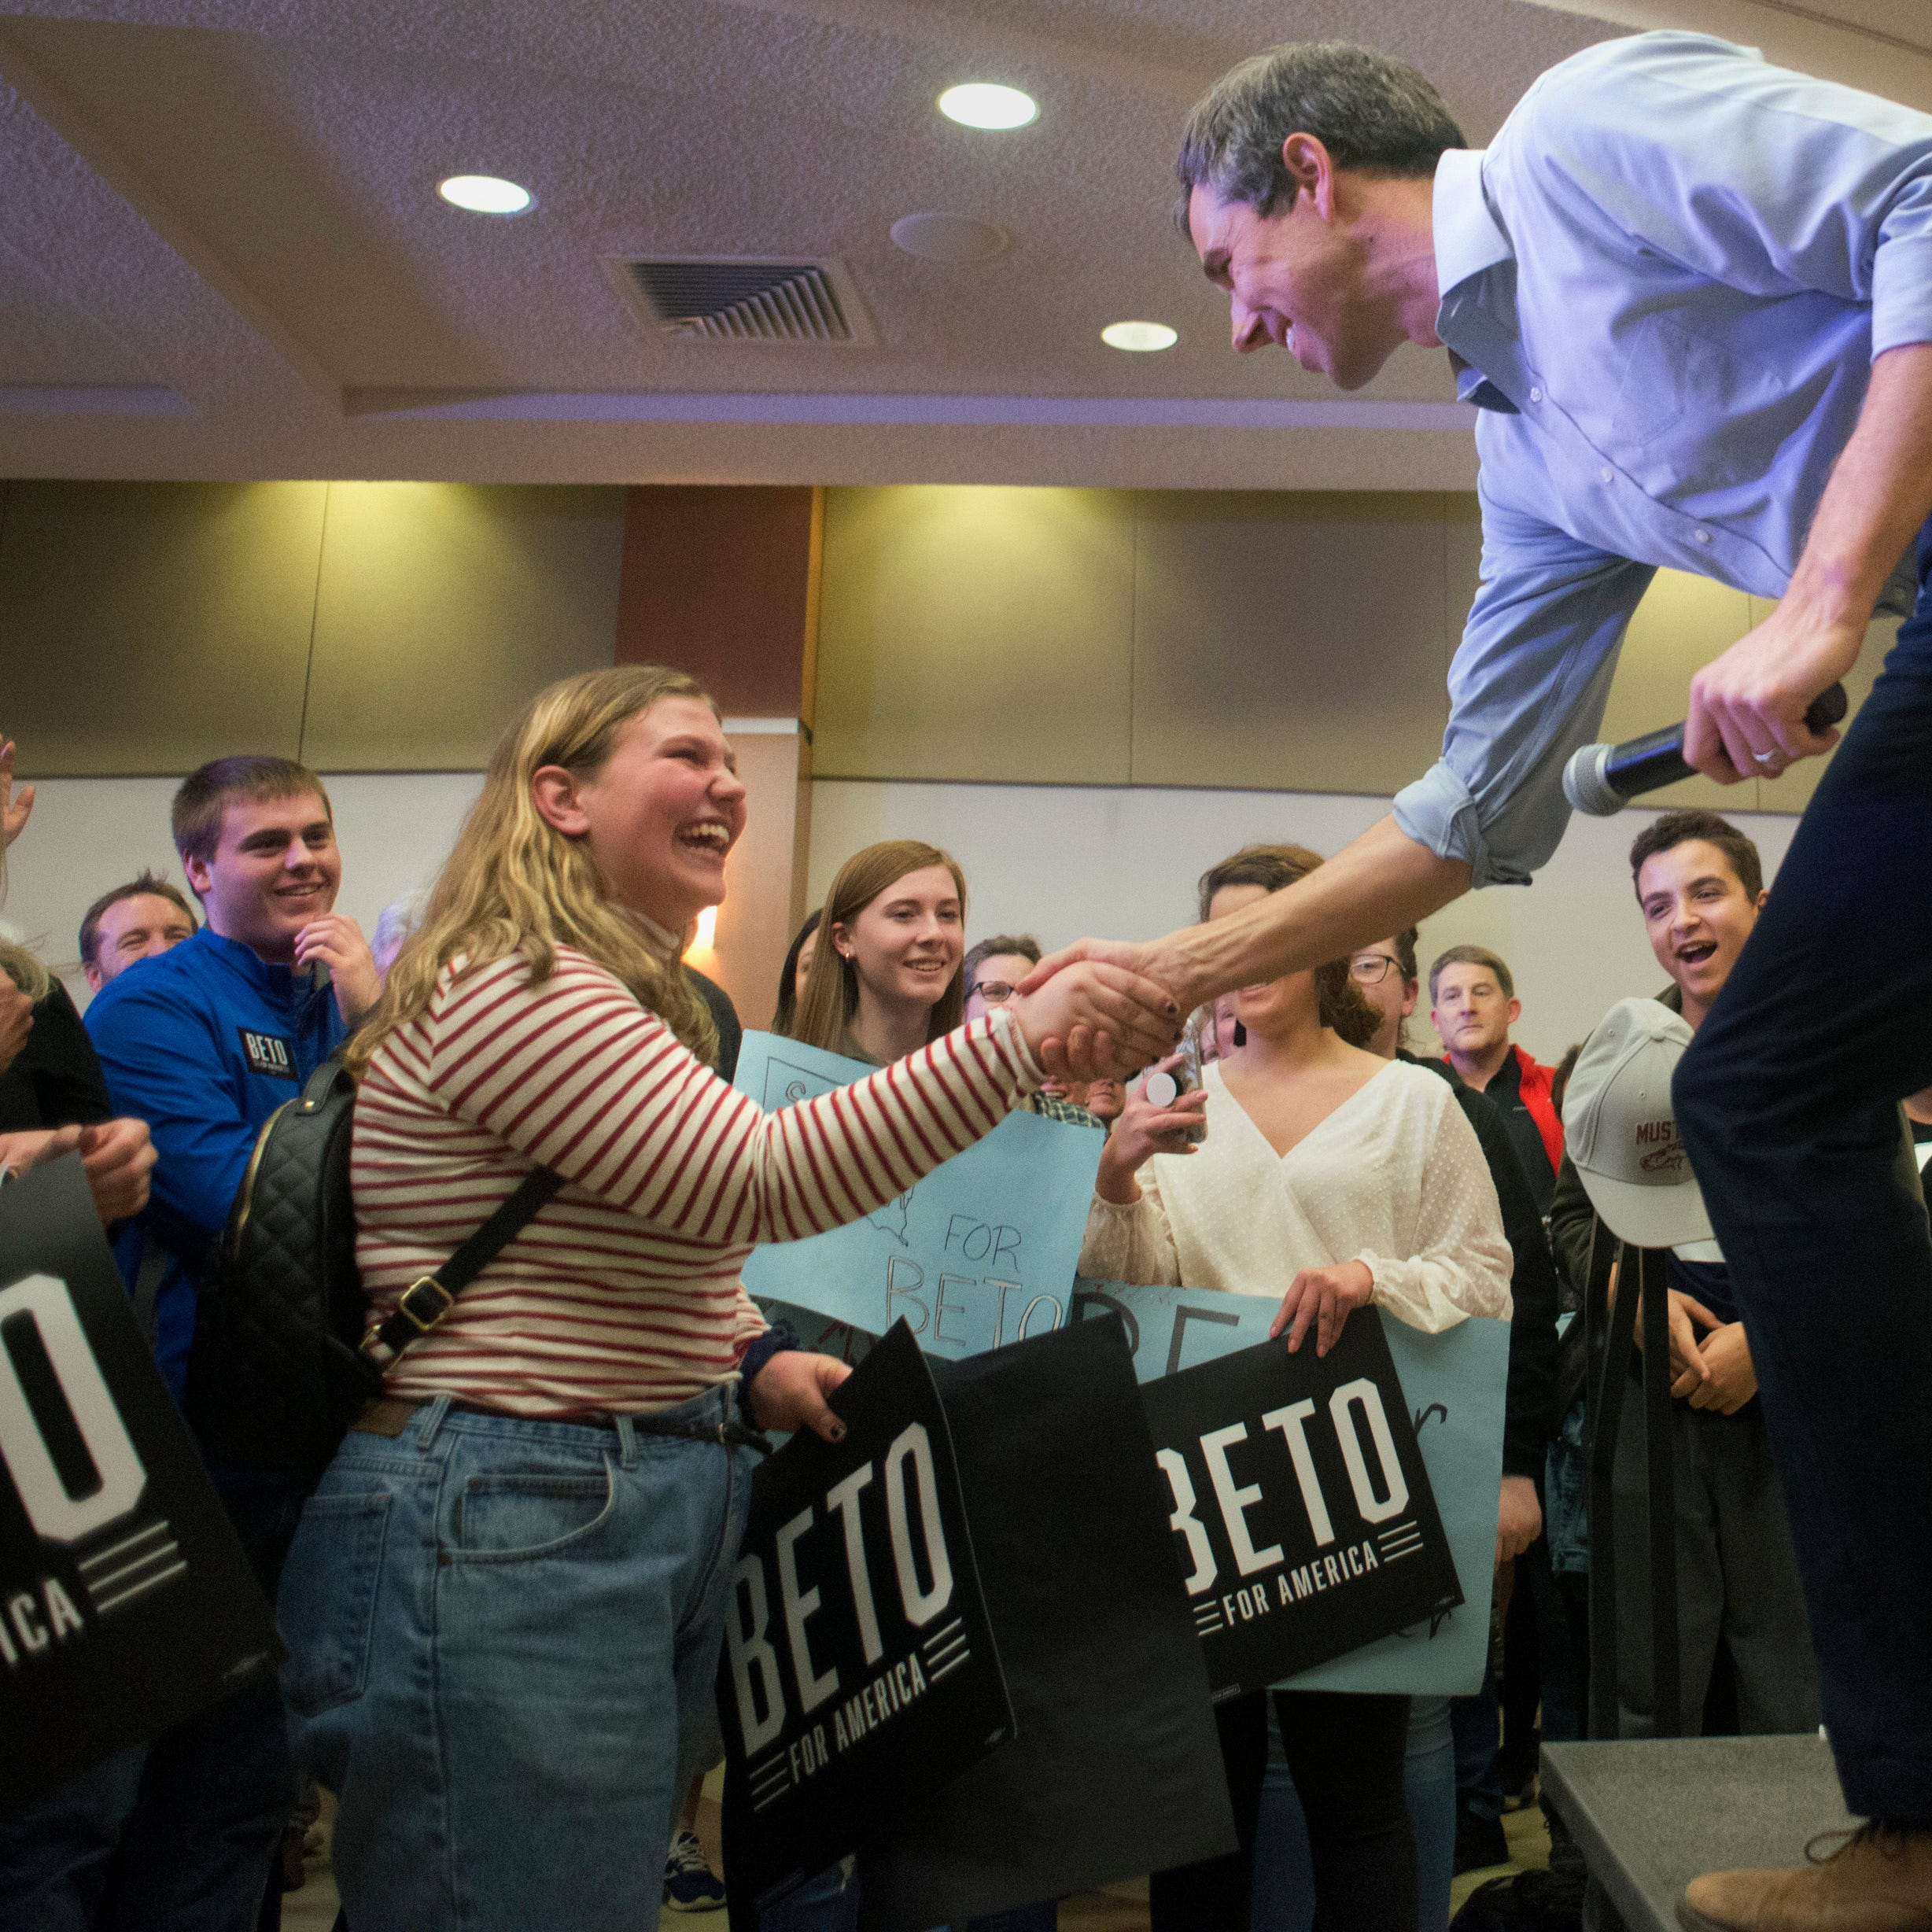 Beto O'Rourke responds to prom-posal from Roosevelt High School senior